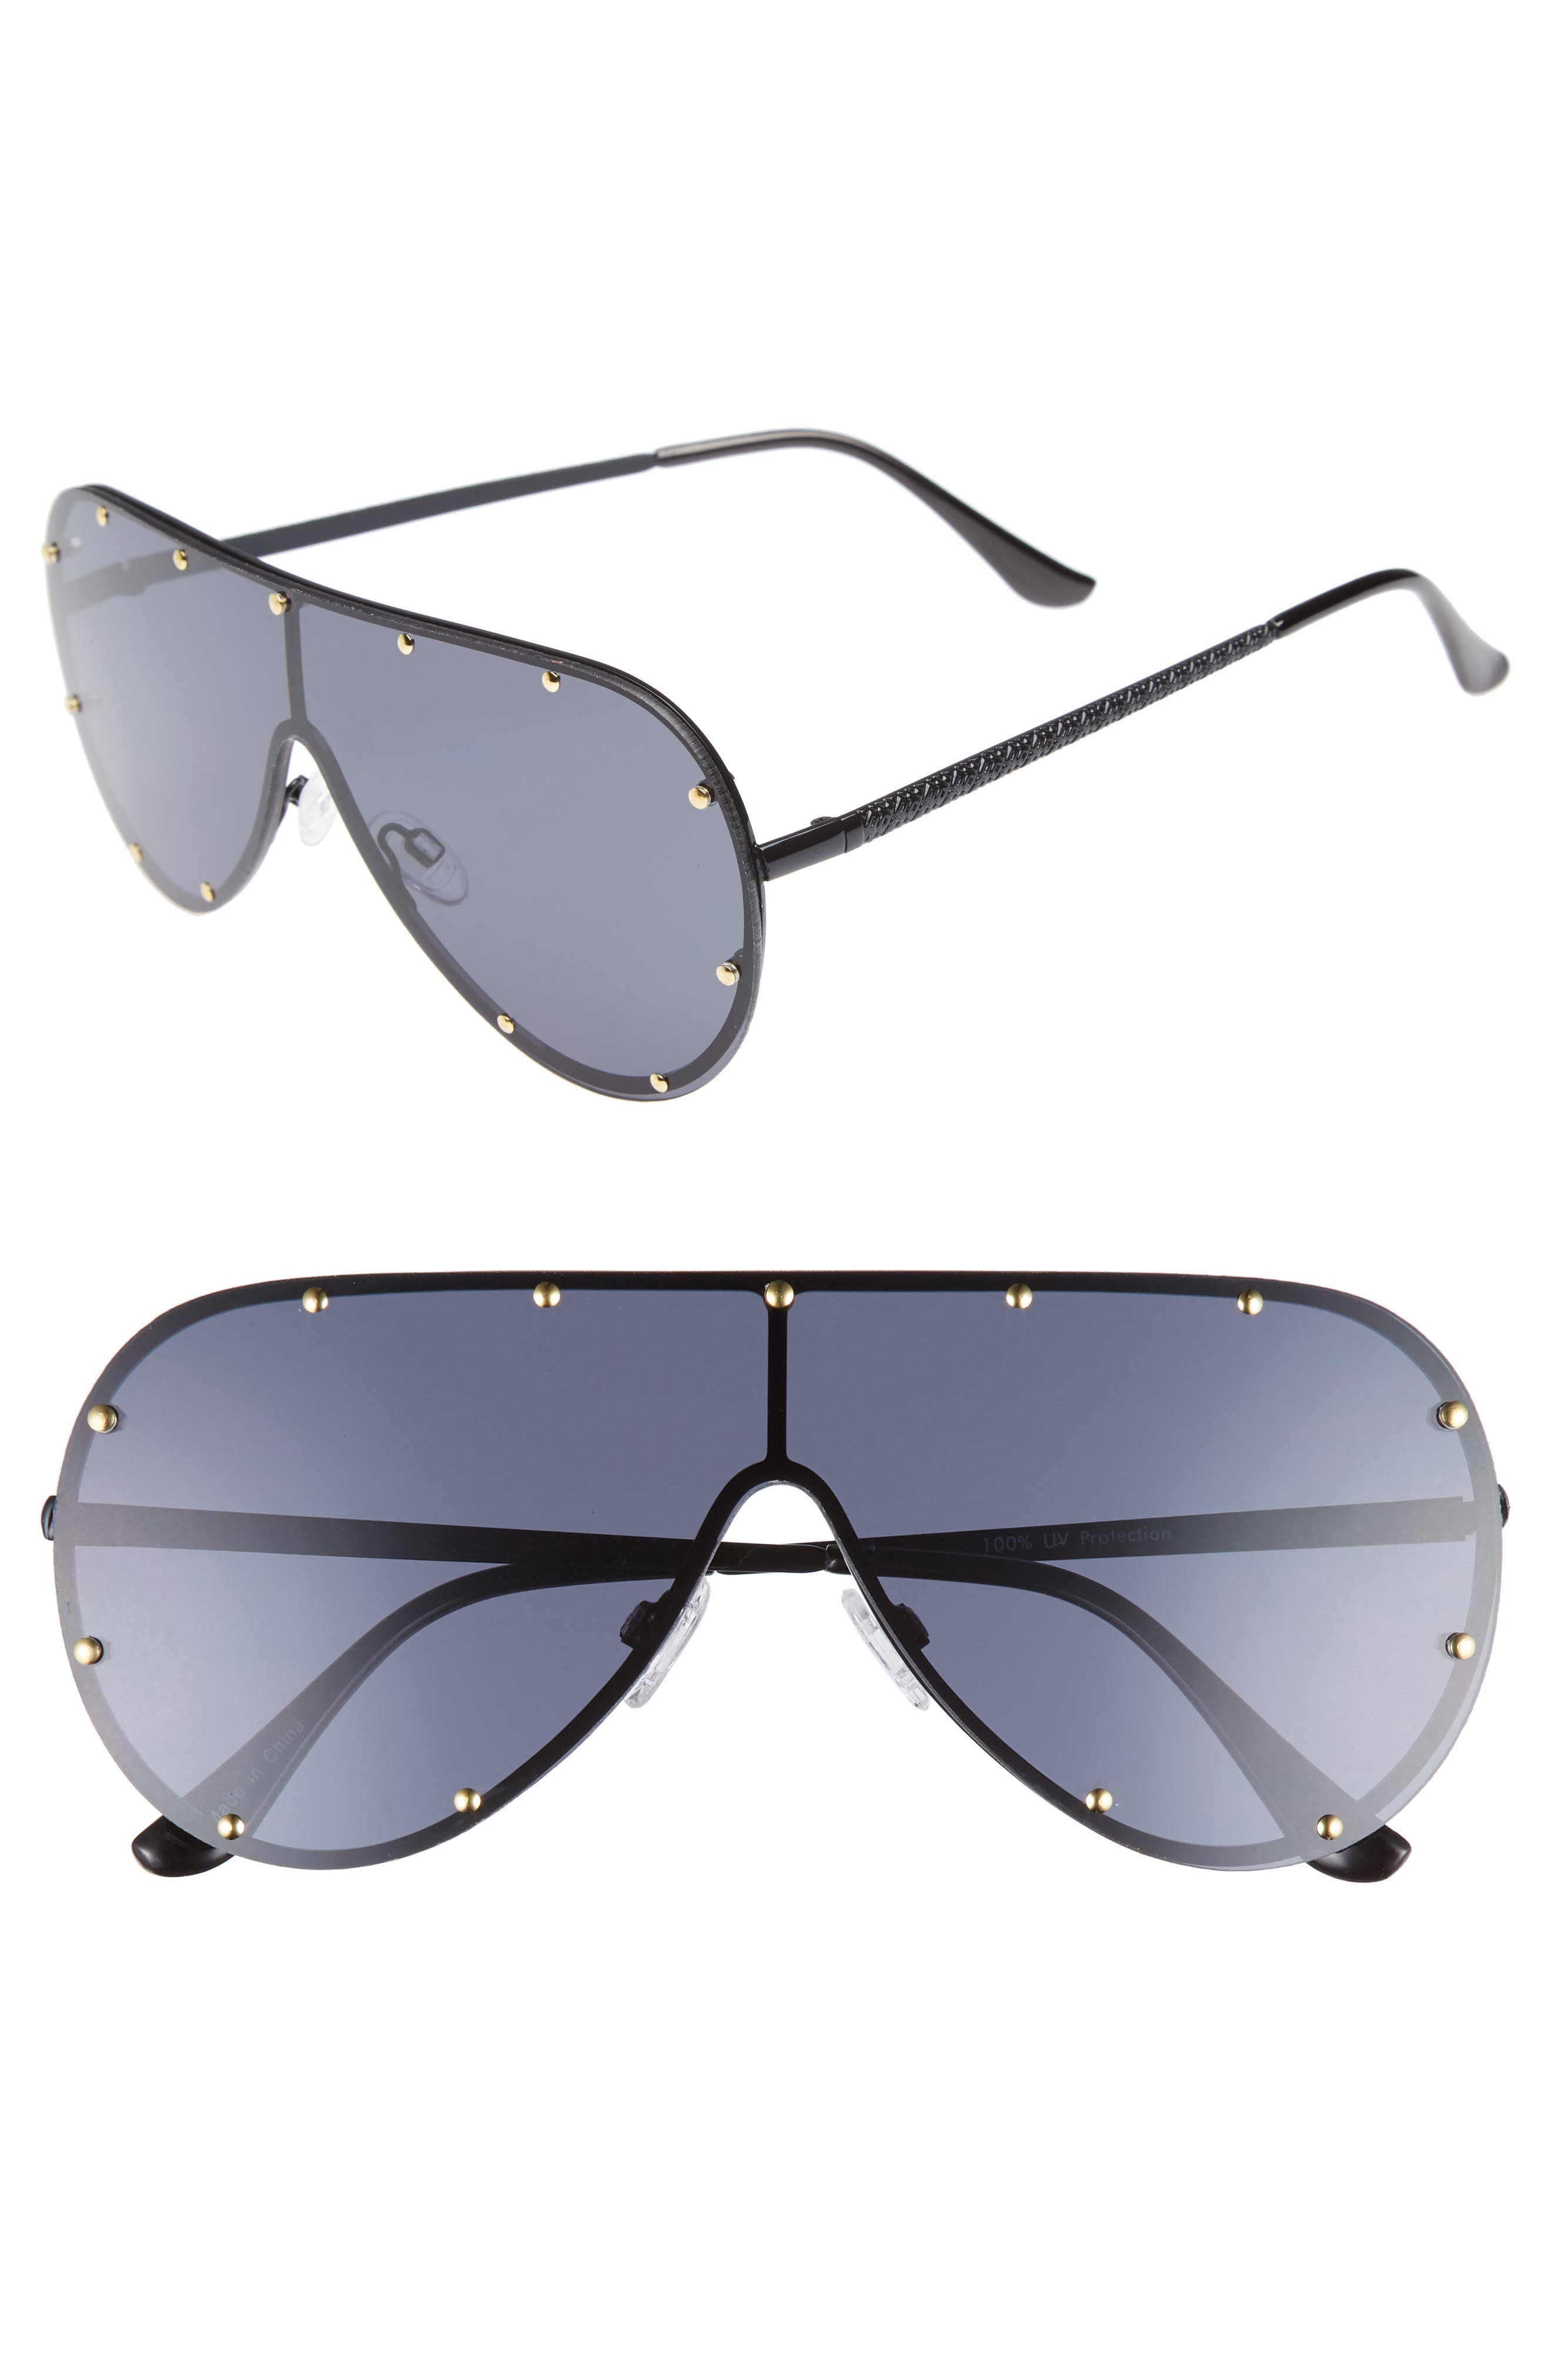 65mm Studded Shield Sunglasses,                             Main thumbnail 1, color,                             001